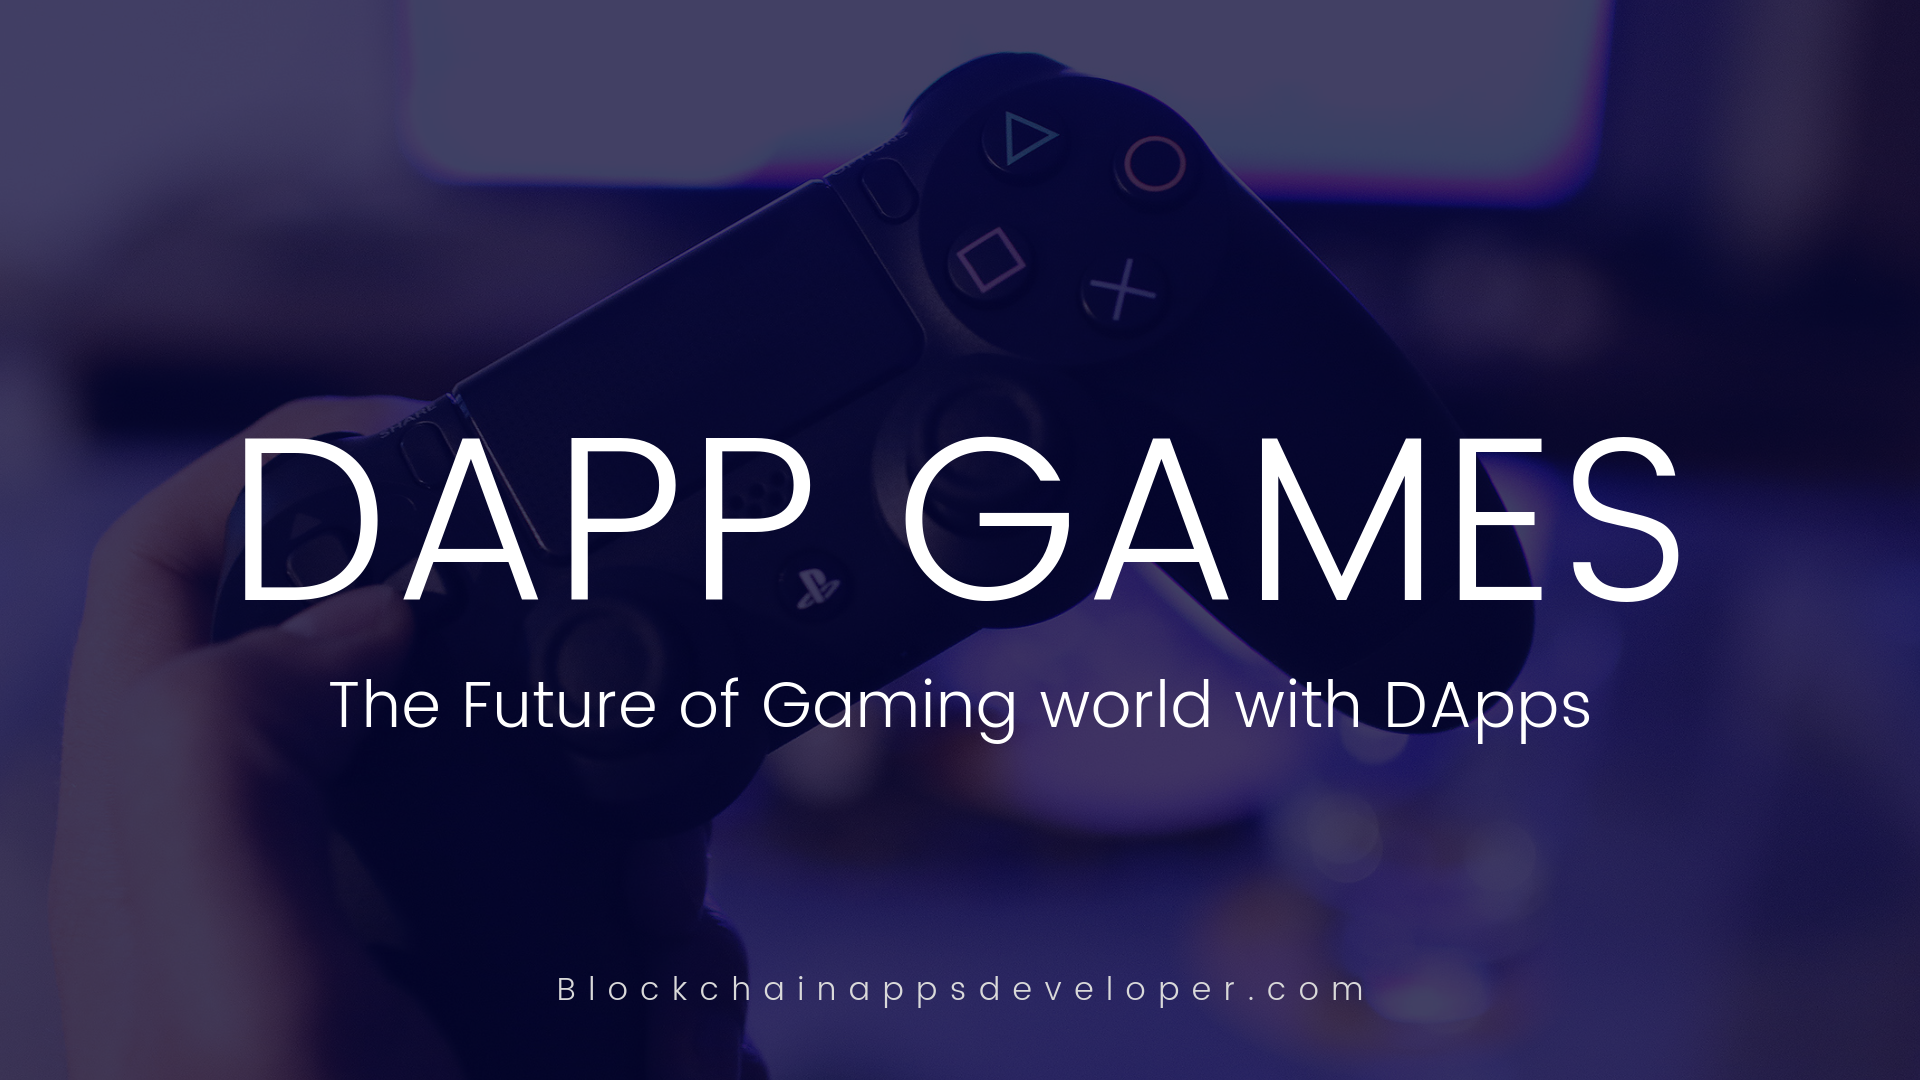 DAPPS - THE FUTURE OF GAMING WORLD